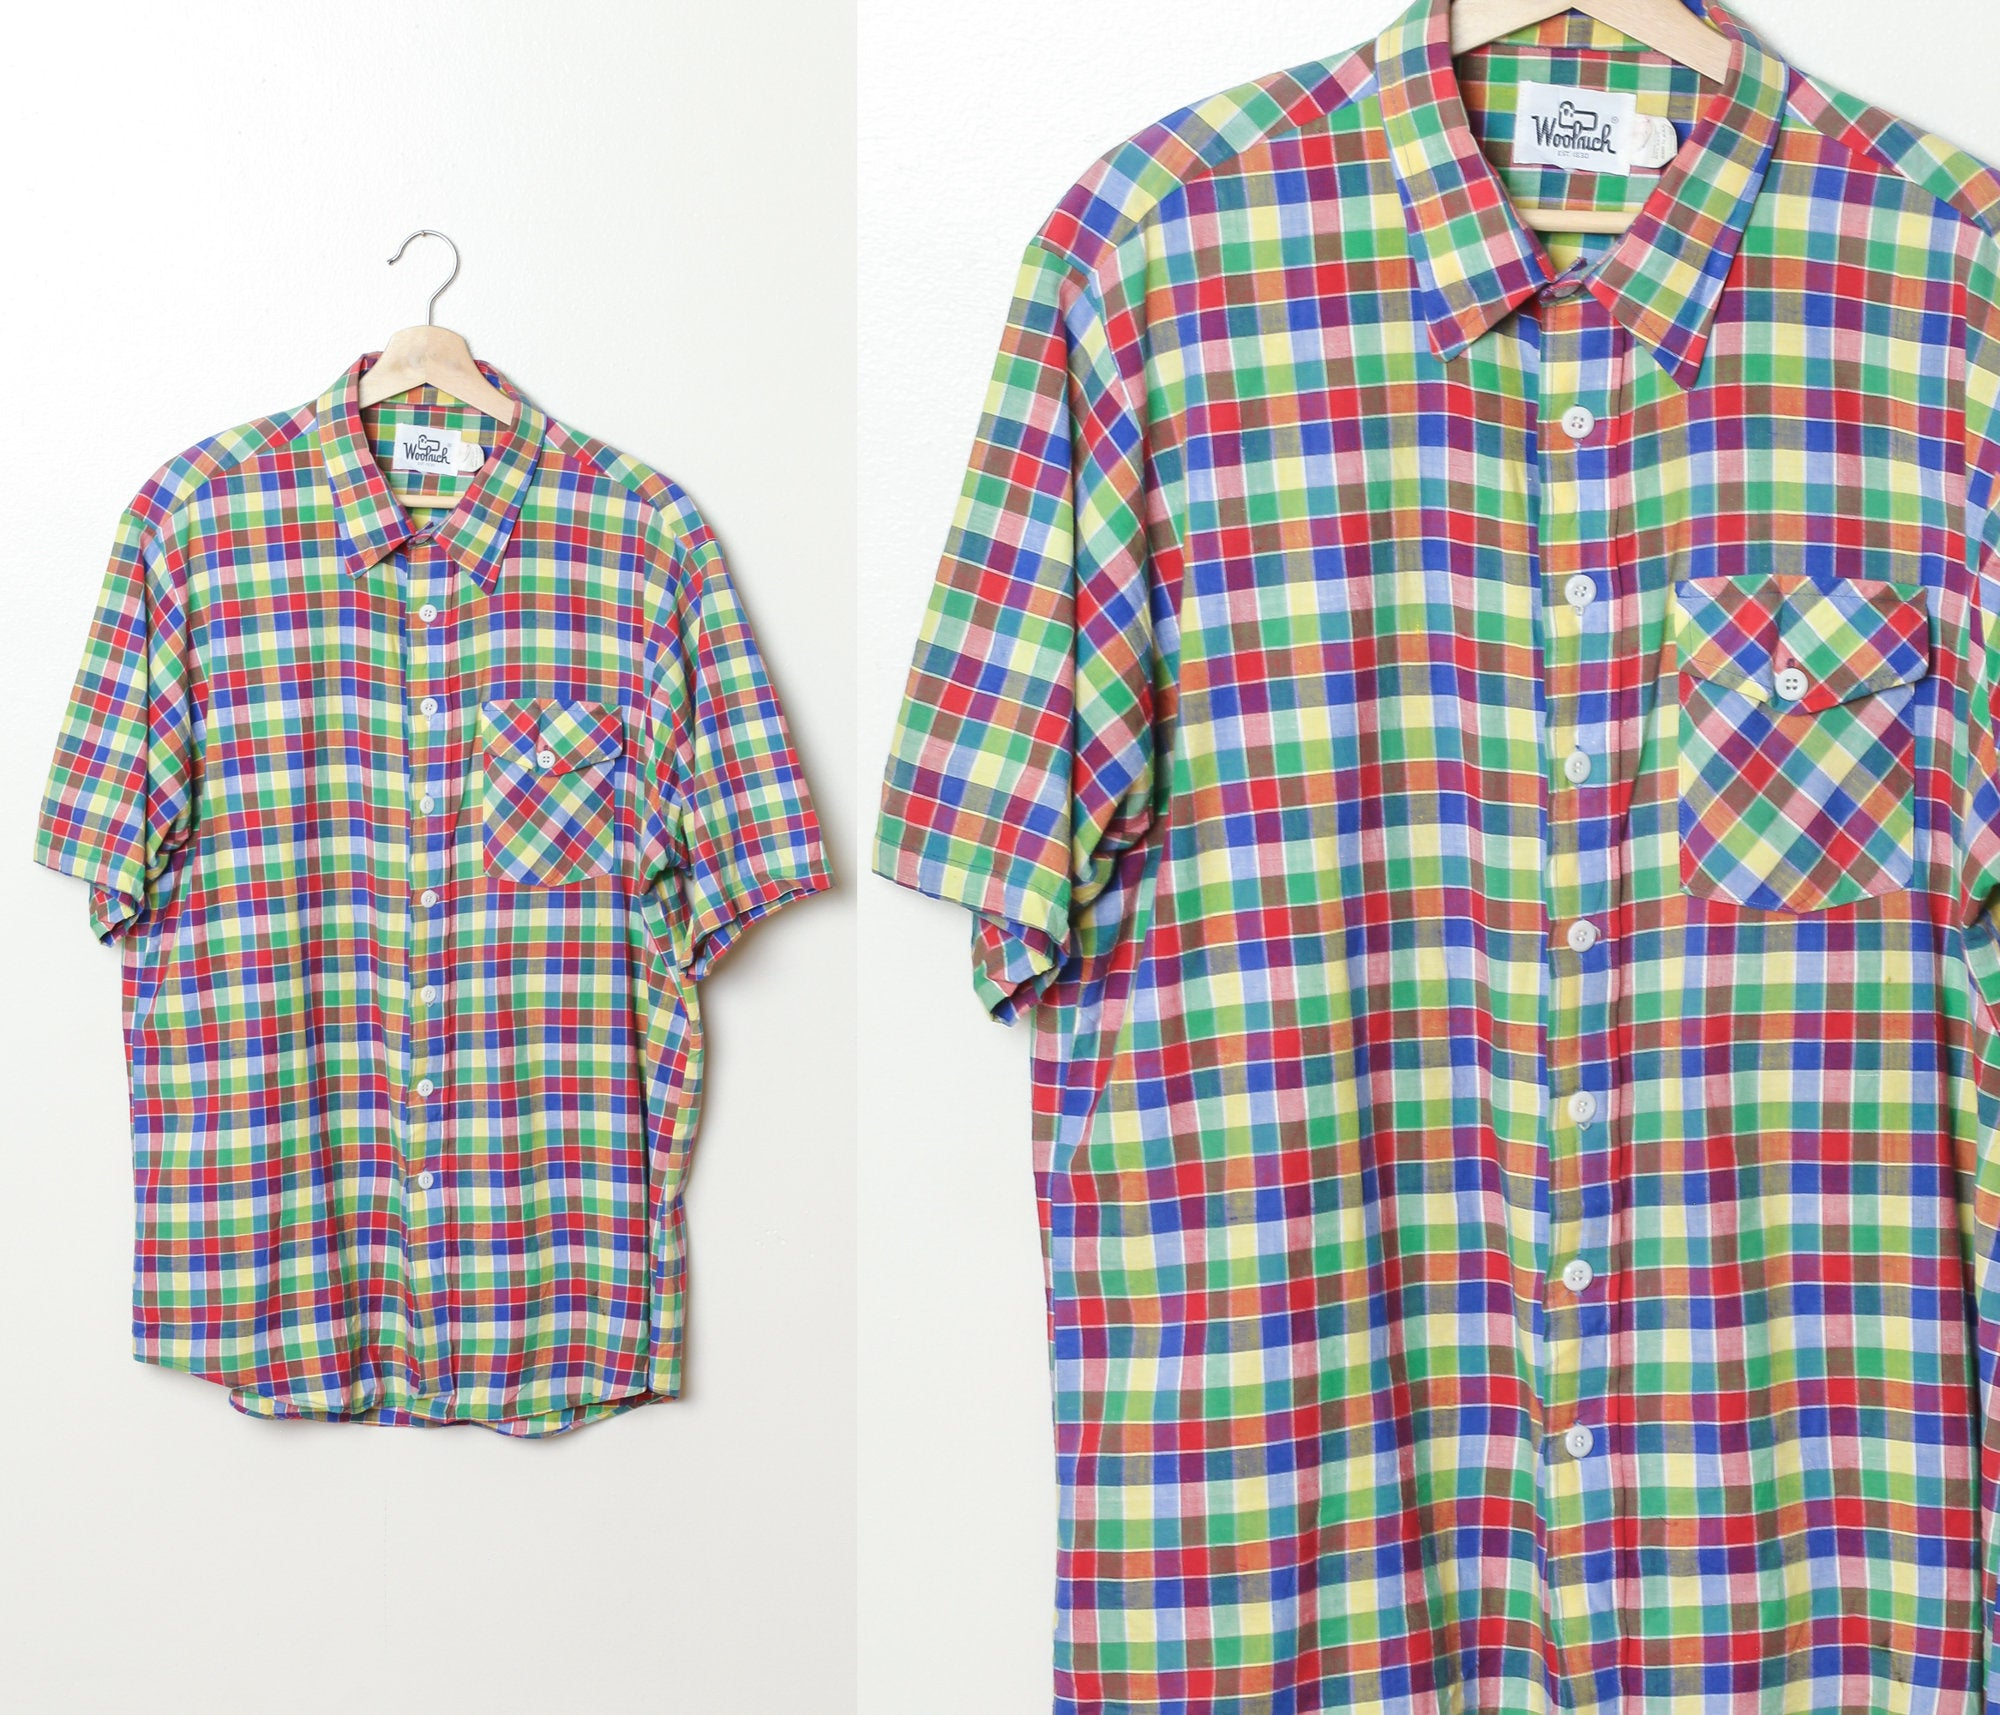 70s Plaid Button Up Shirt - Mens XL